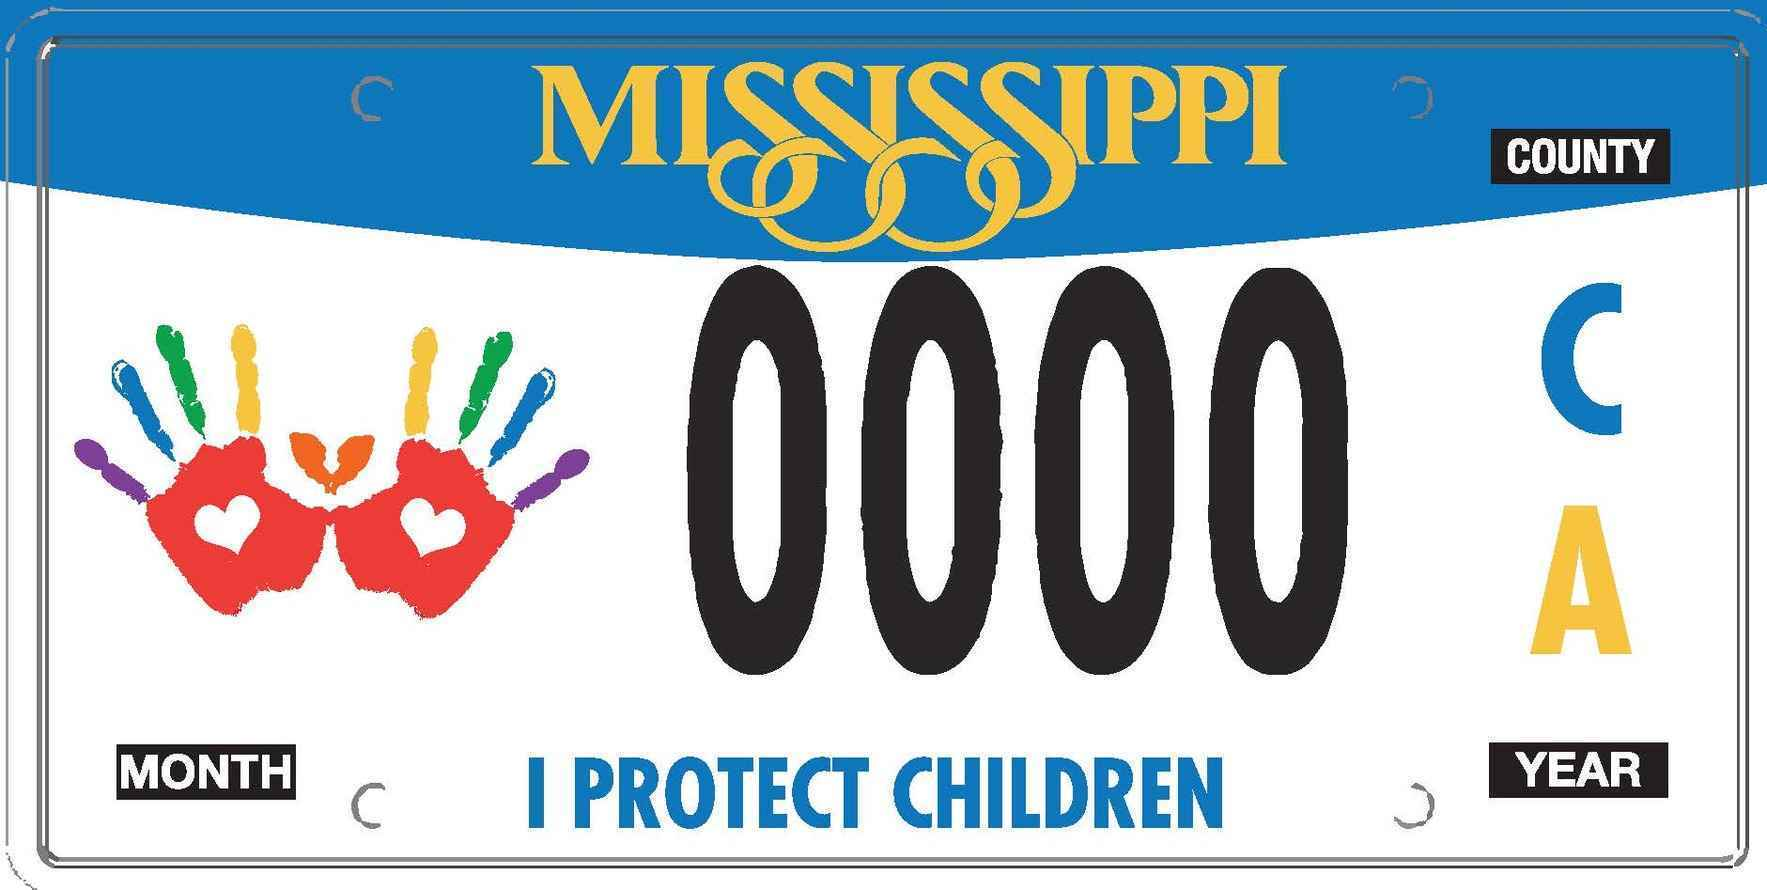 Specialty License Plate image